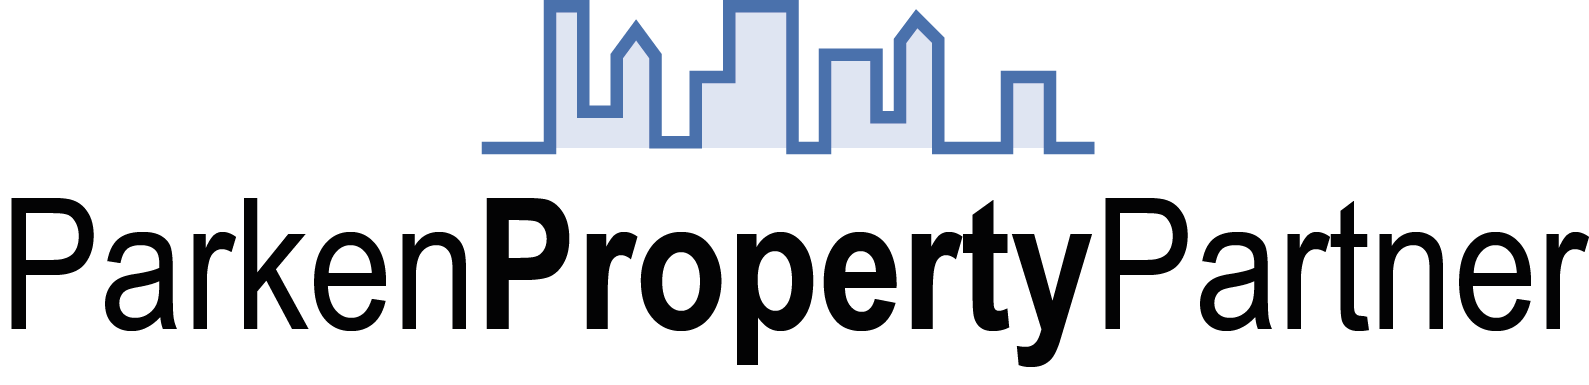 ParkenPropertyPartner